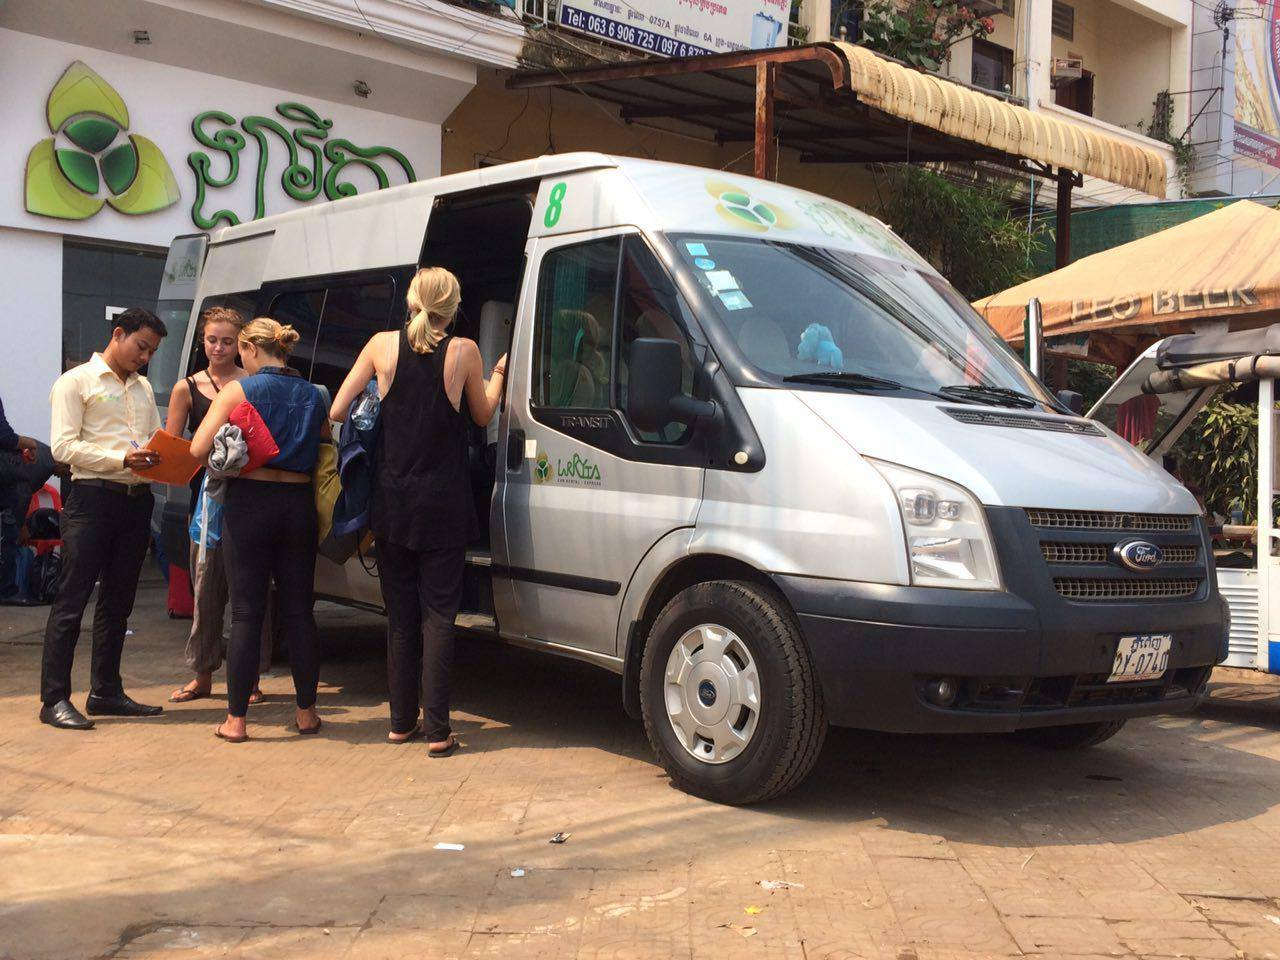 Larryta Express Mini Bus, Cambodia Bus Ticket, Online Bus Ticket Booking, Phnom Penh Bus Ticket